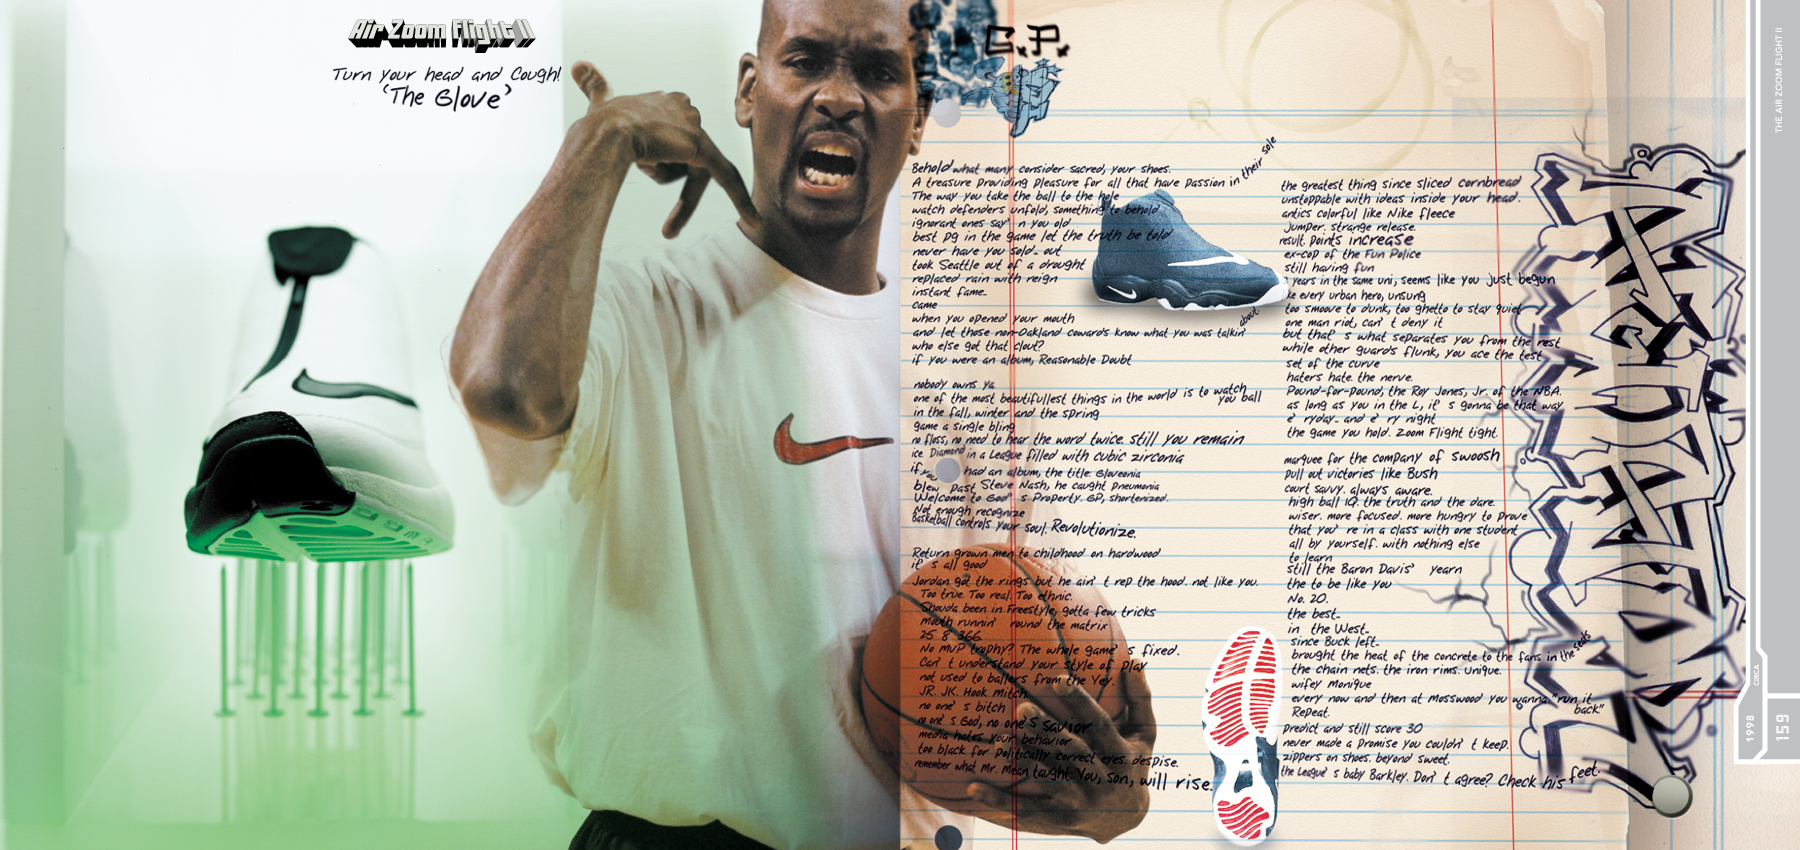 Nike sole provider spread with lined paper graffiti and sneakers